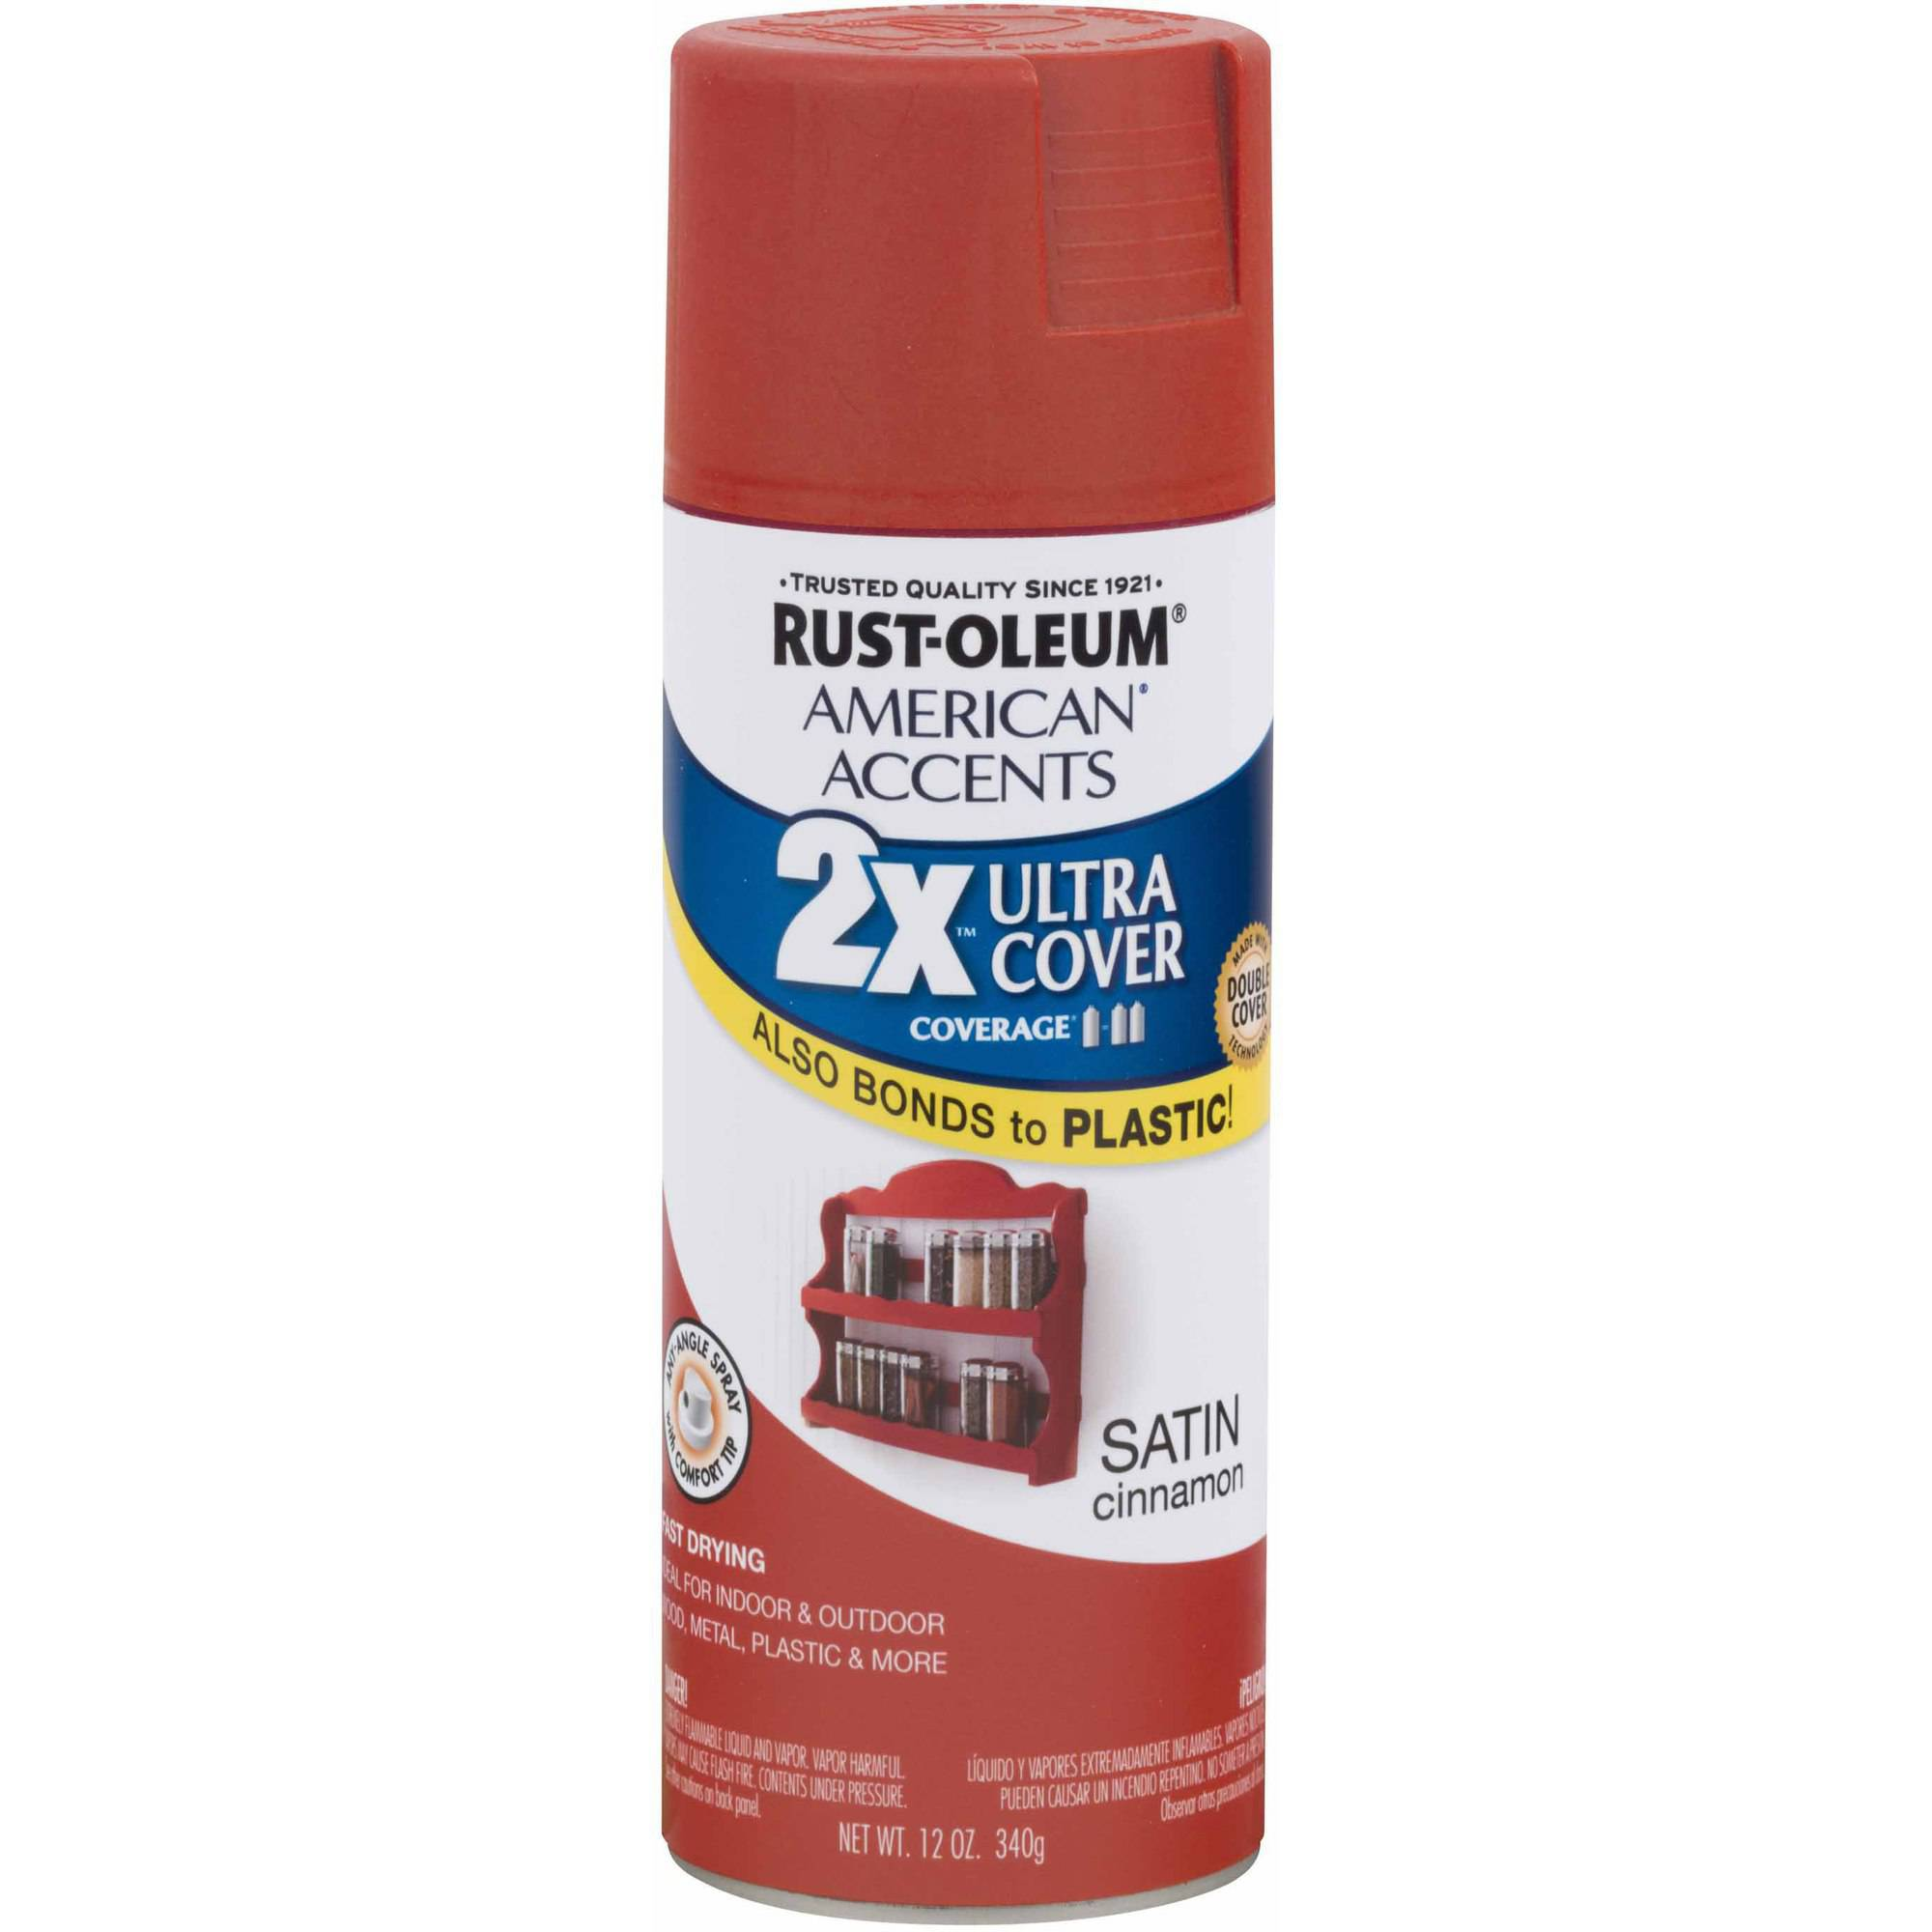 Rust-Oleum American Accents Ultra Cover 2x, Satin Cinnamon